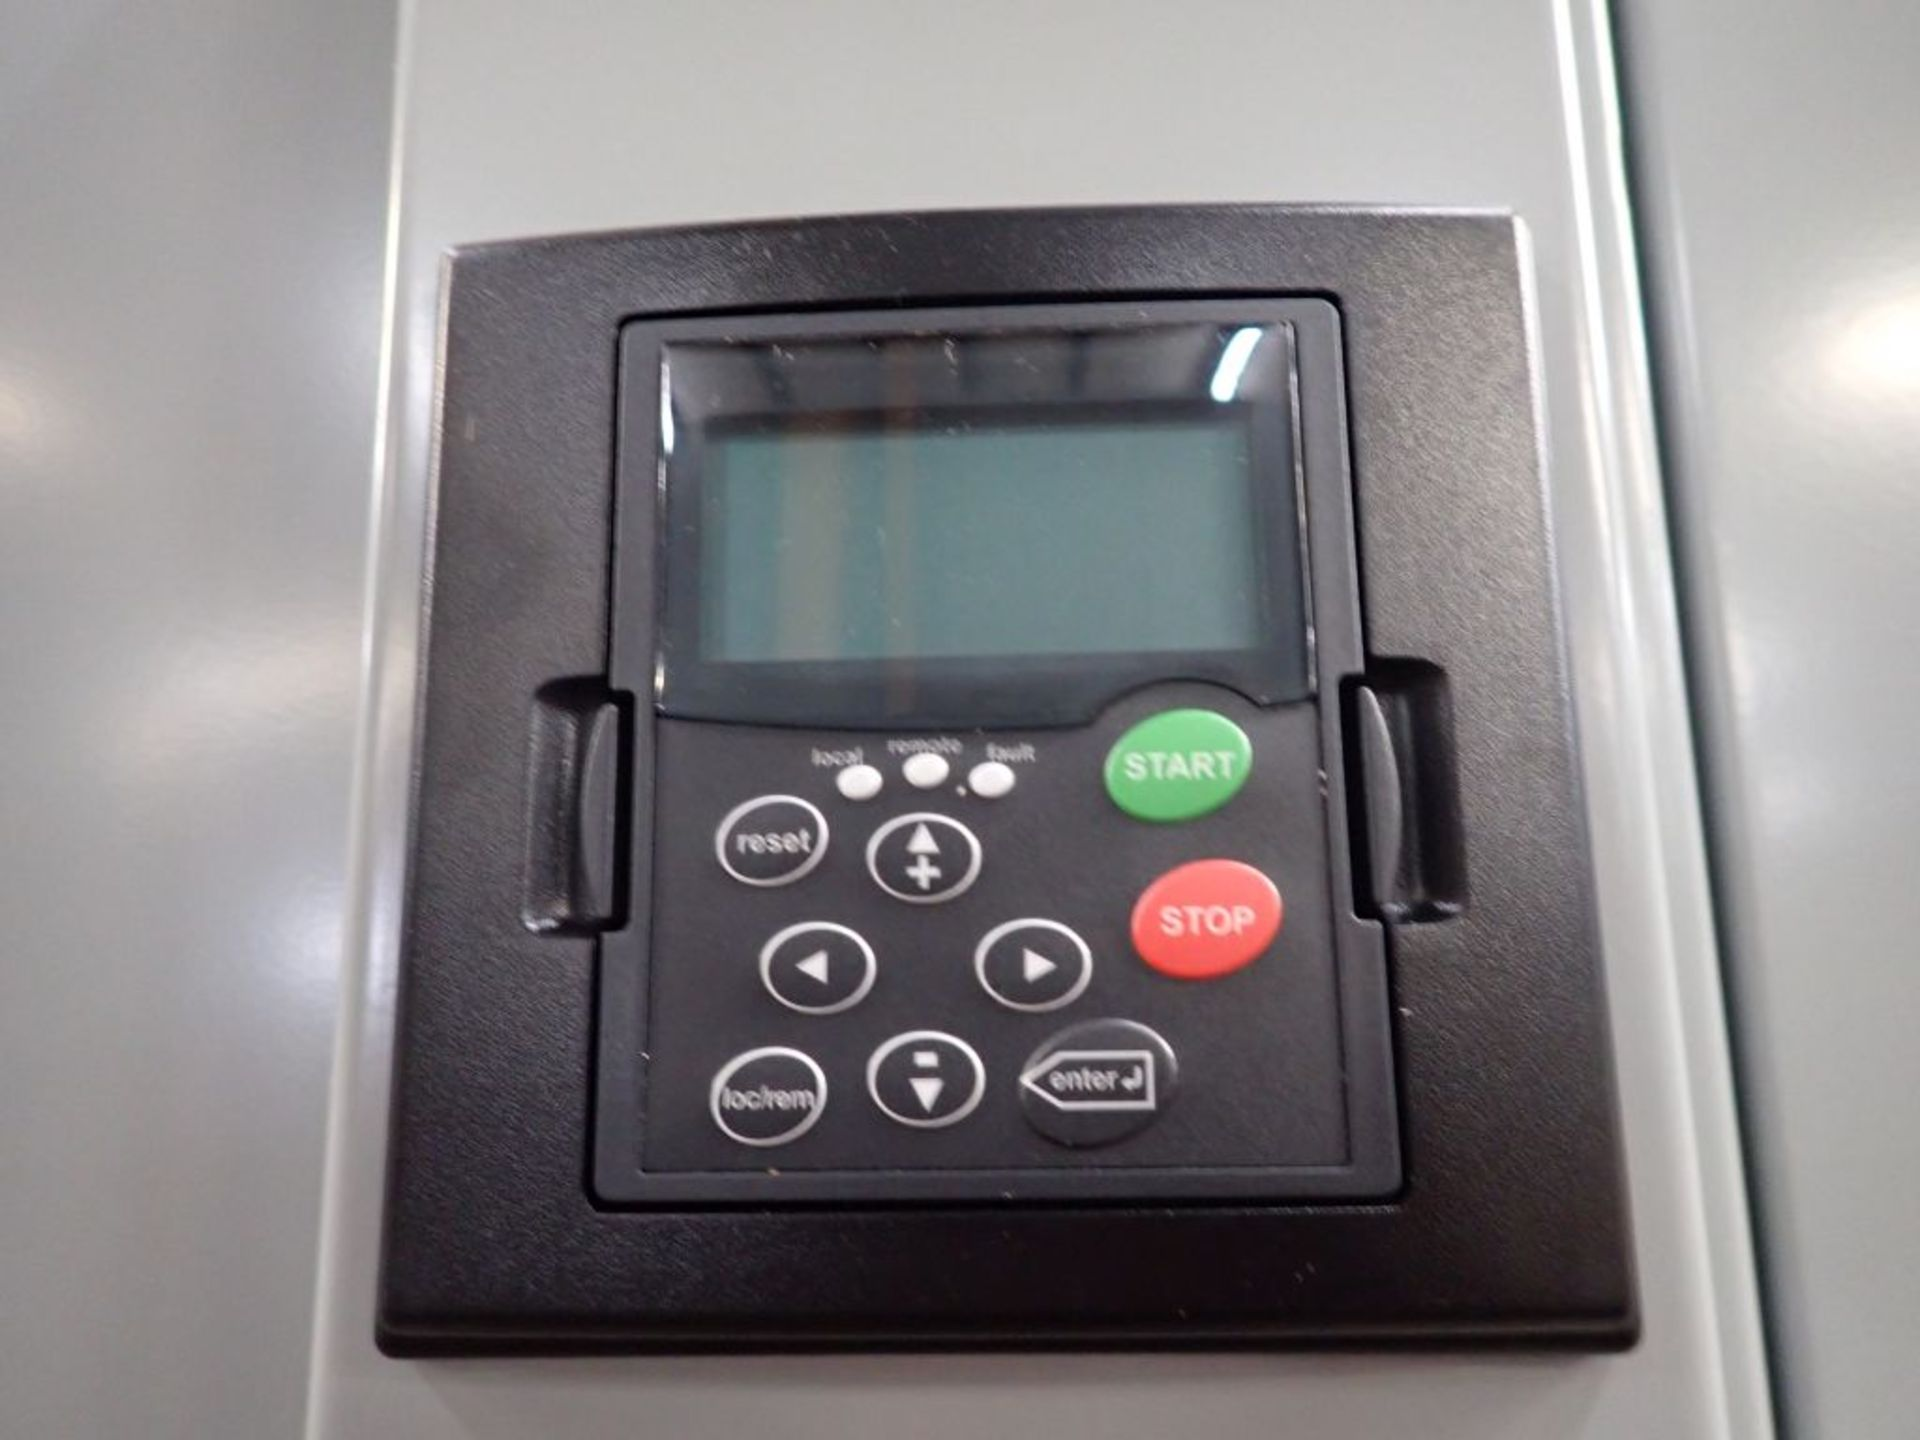 Eaton Freedom 2100 Series Motor Control Center   (4) SVX900-30A, with Eaton AF Drives, SVX9000, - Image 15 of 60